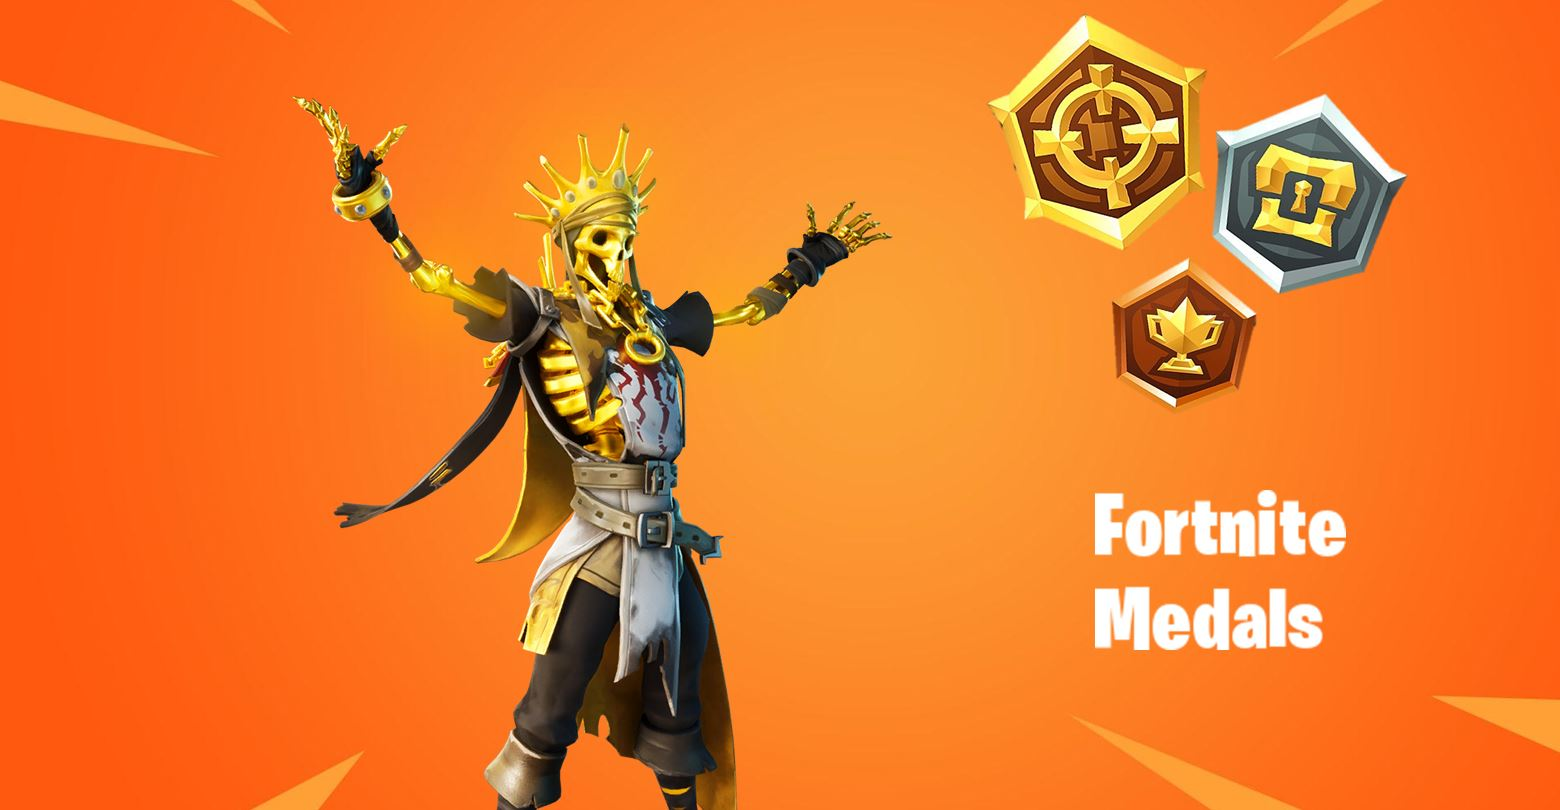 Fortnite Collect Medals